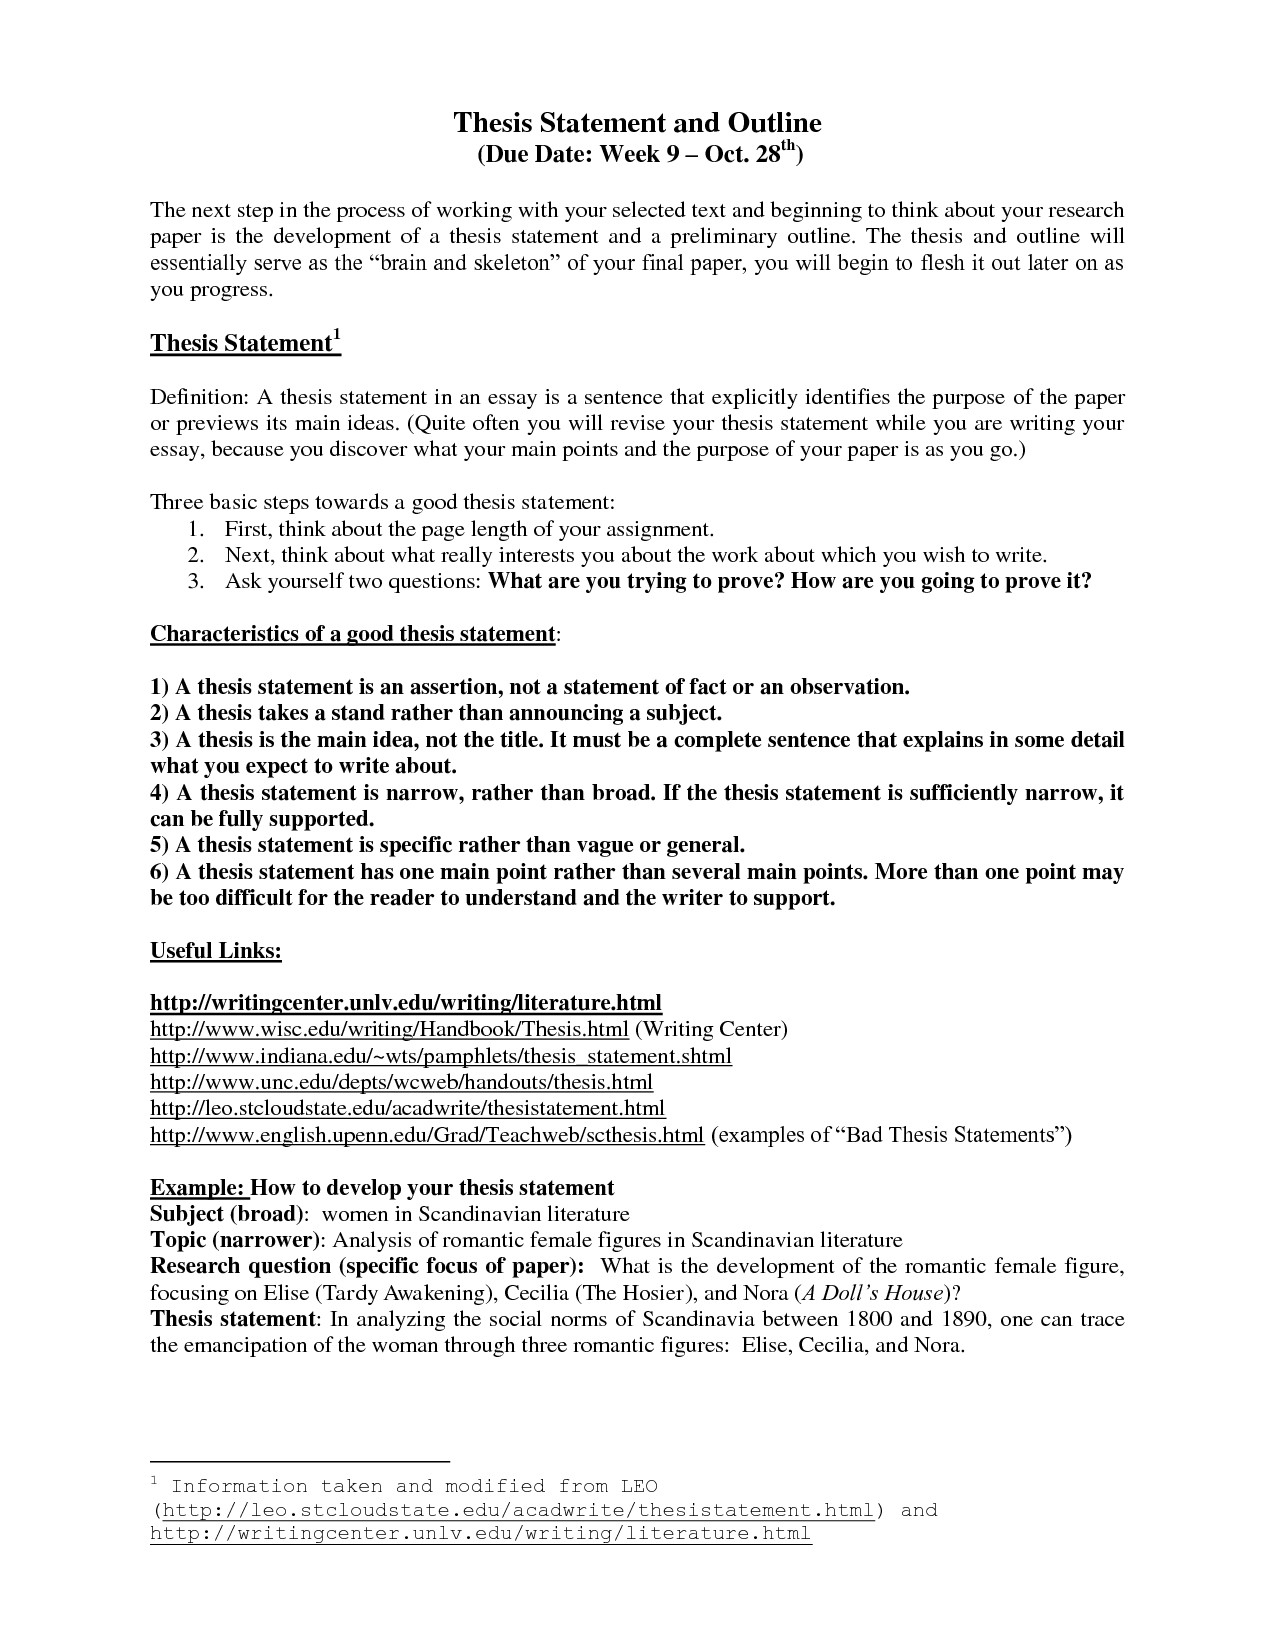 012 Essay Example Steps To Writing An Argumentative Thesis Statements For Essays Valid Statement Examples Within Marvelous What Is The Second Step In Prewriting Process Easy Write Flow Chart Shows Some Of Full